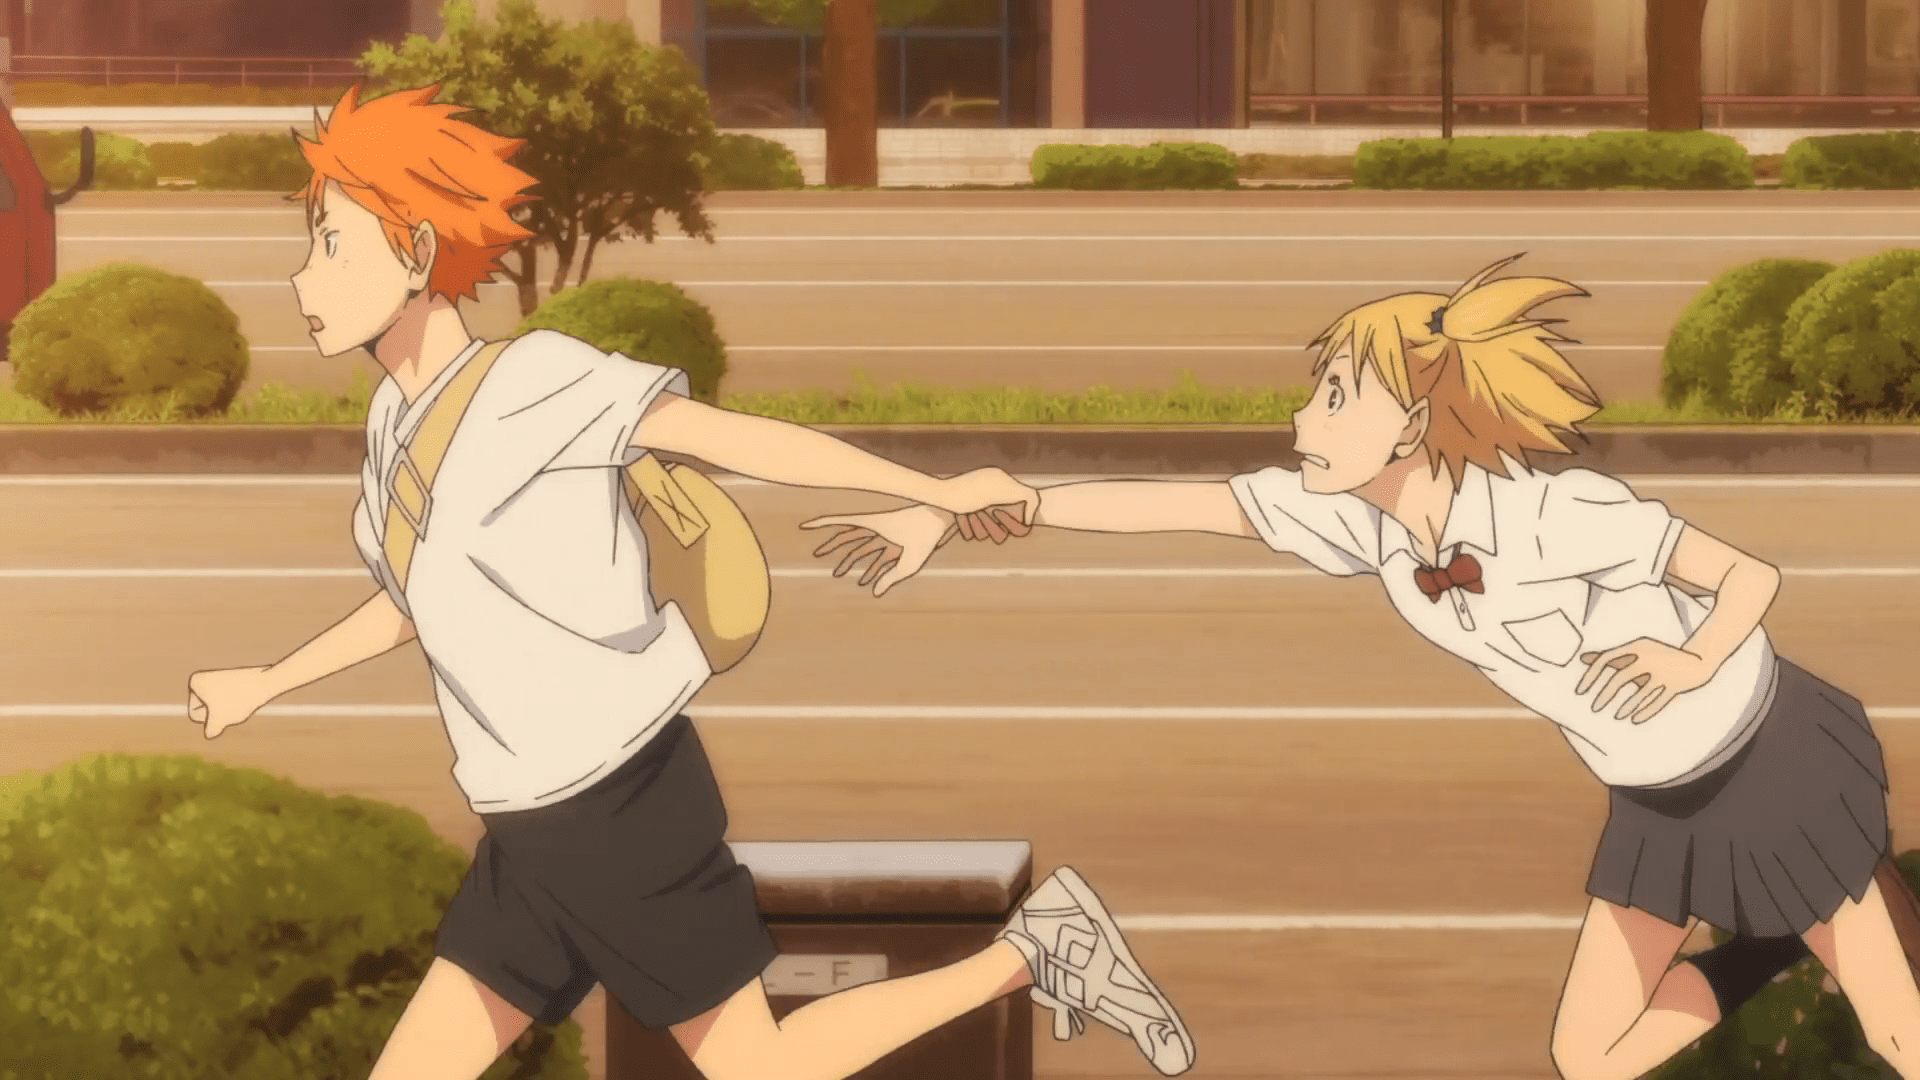 Who Does Yachi End Up With?